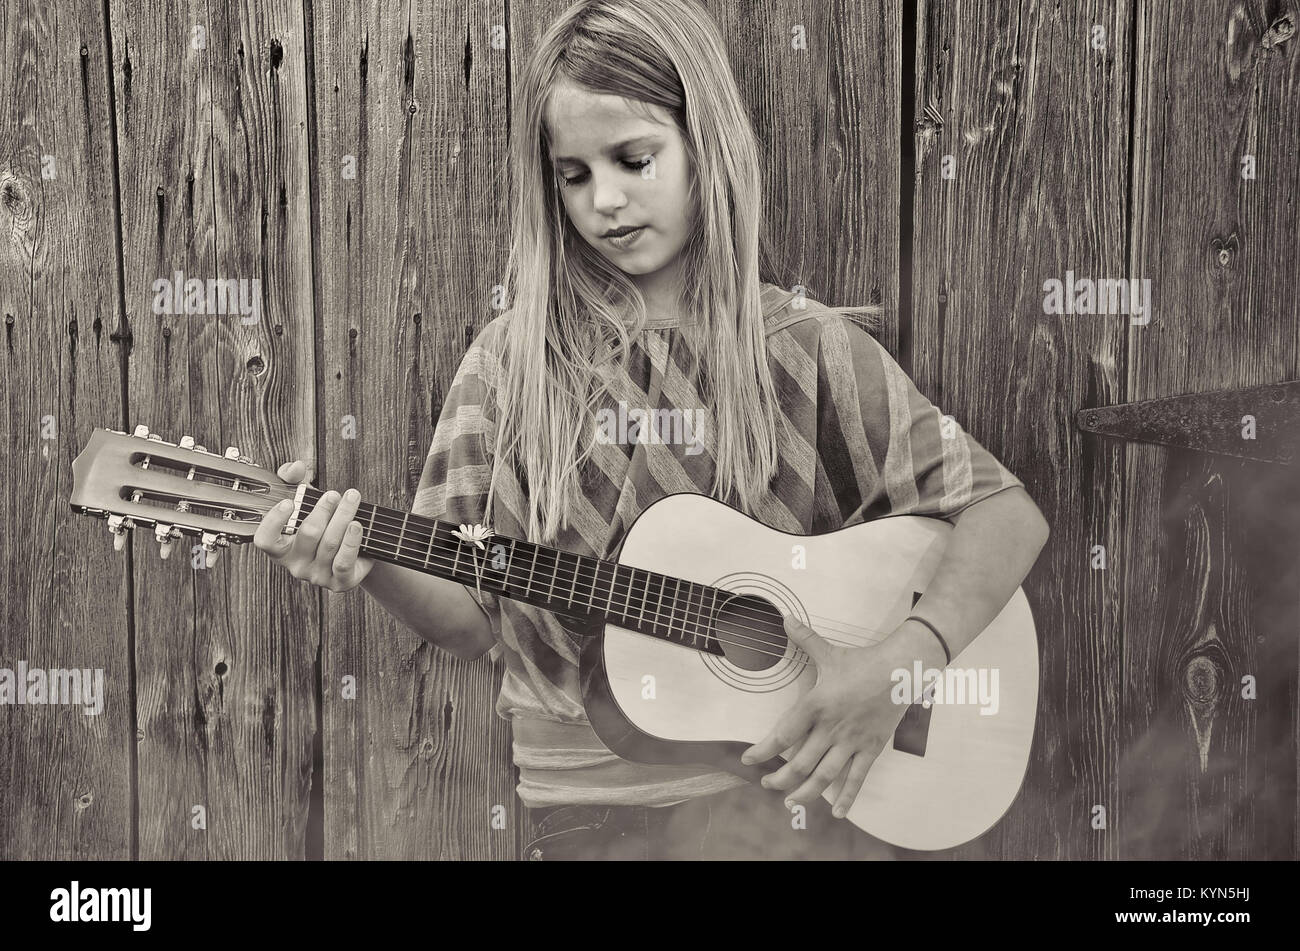 young girl playing guitar by old rustic wooden barn with fog in sepia tones - Stock Image